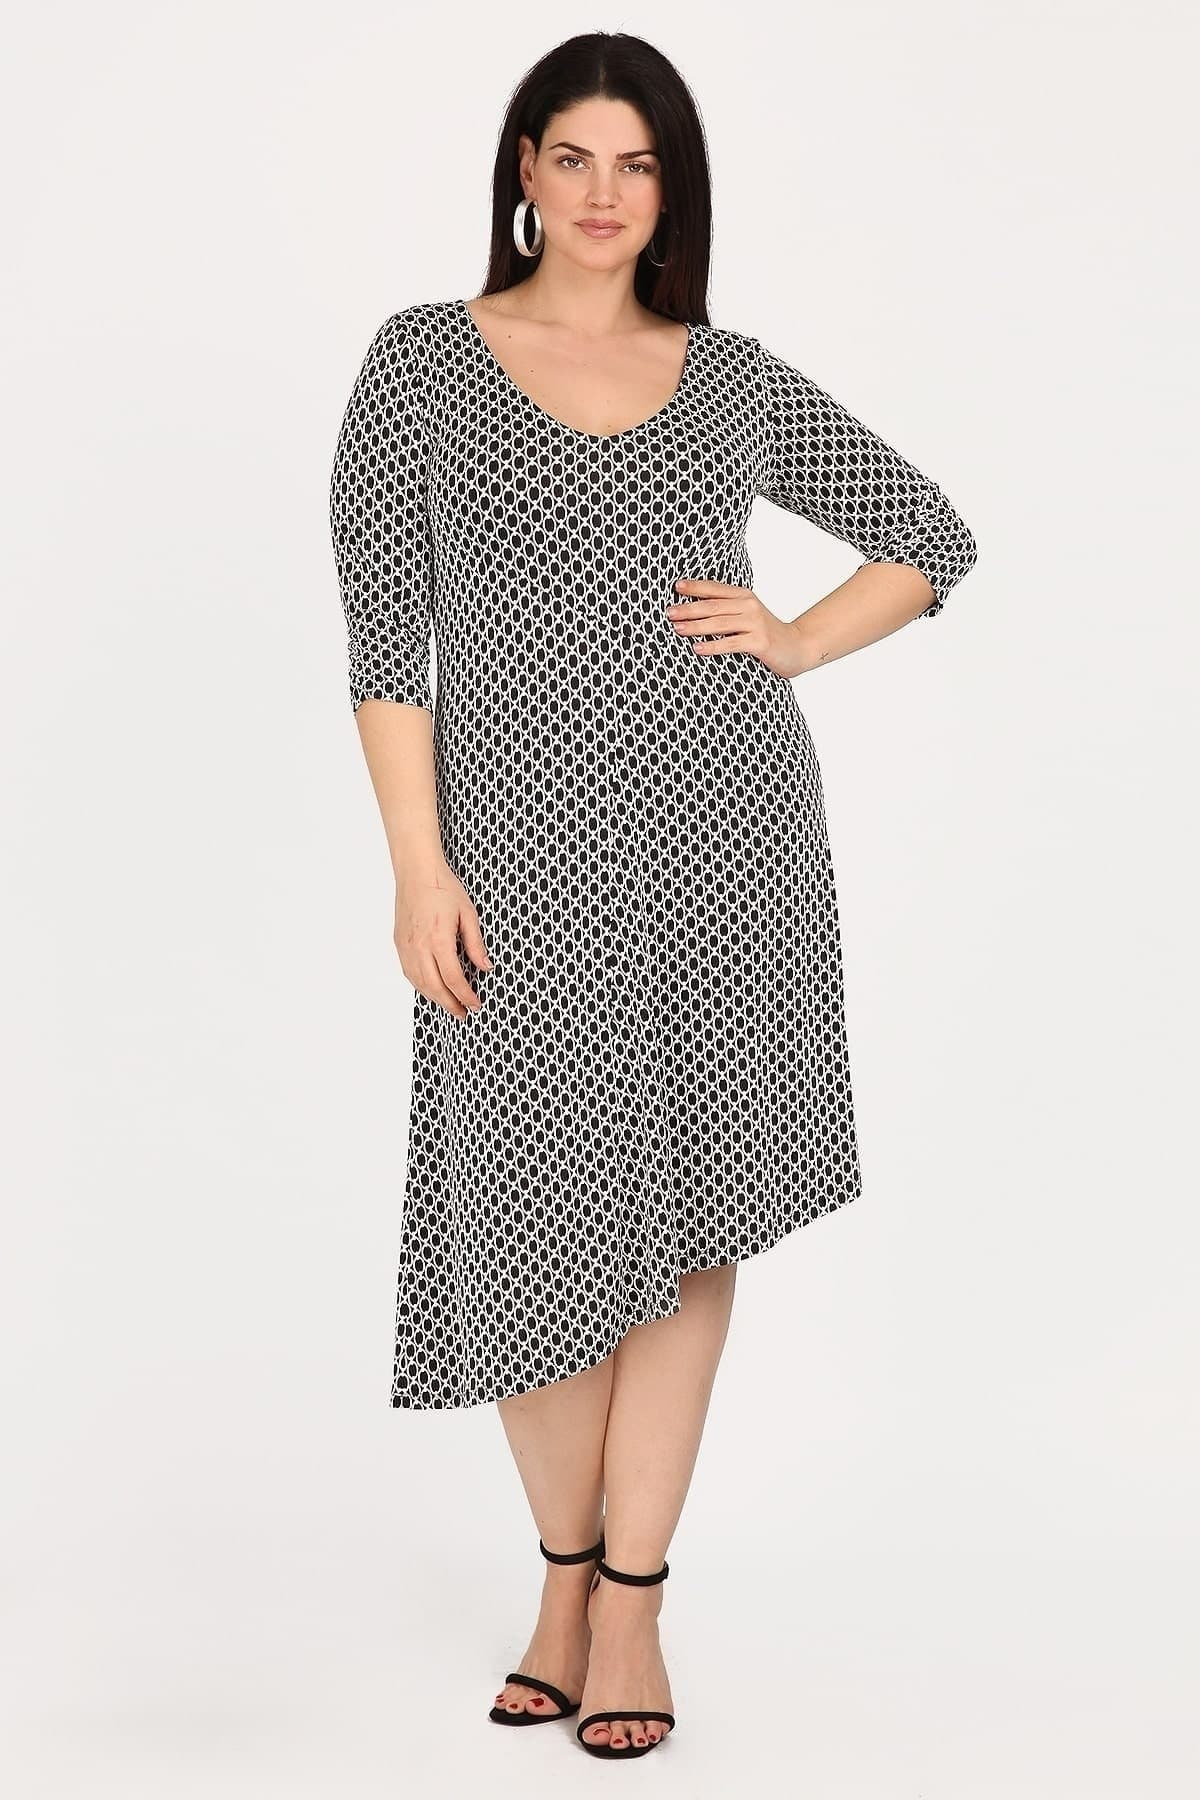 Printed midi dress with chains pattern